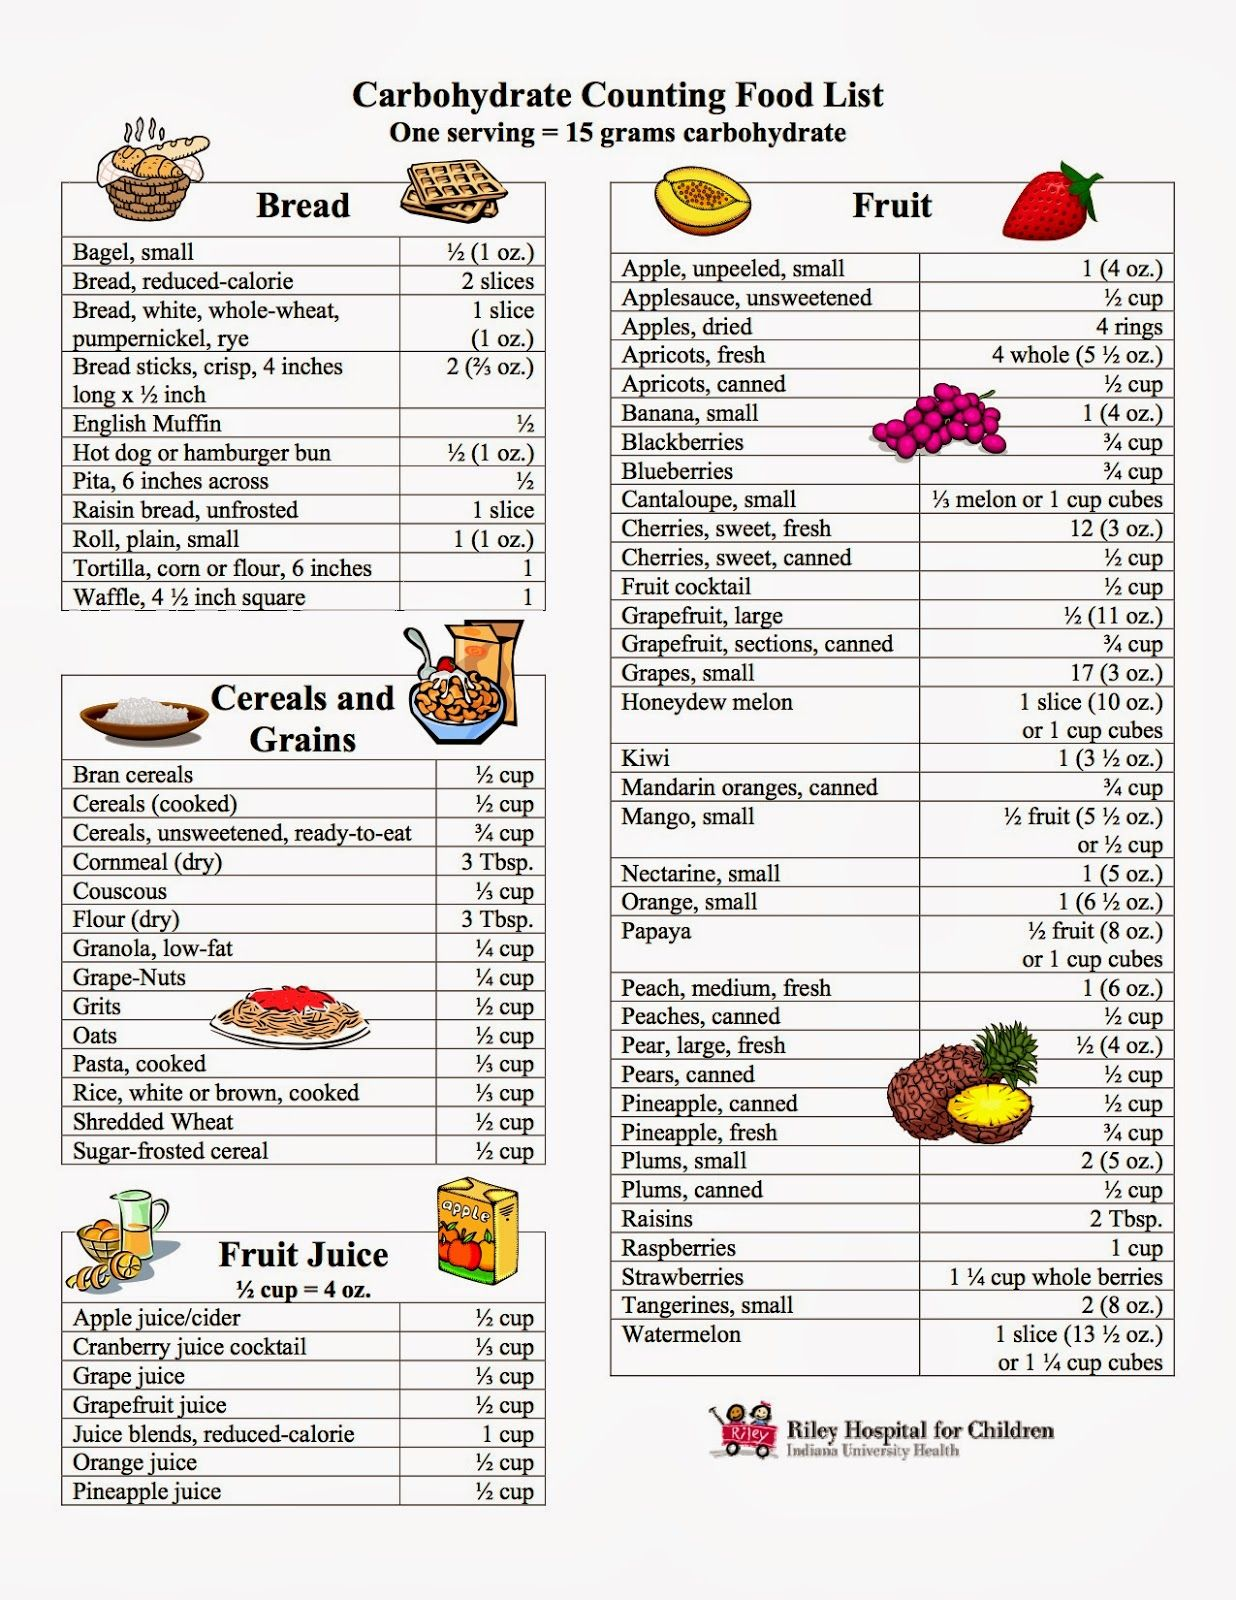 Diabetes Carbohydrate Counting Food List Australia